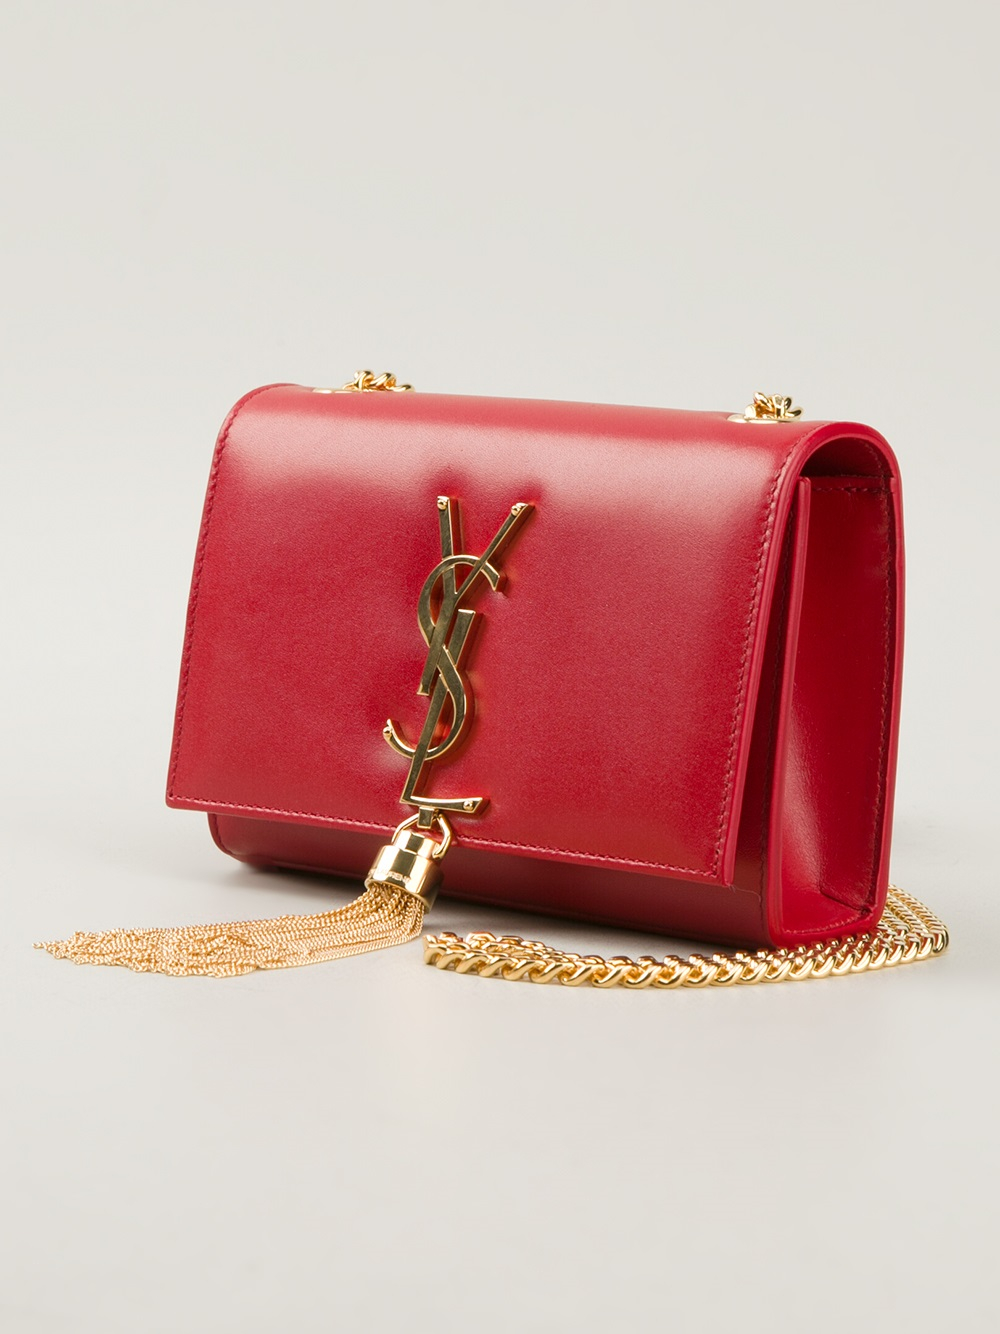 b36ad60416a0 Saint Laurent Classic Monogramme Tassel Shoulder Bag in Red - Lyst